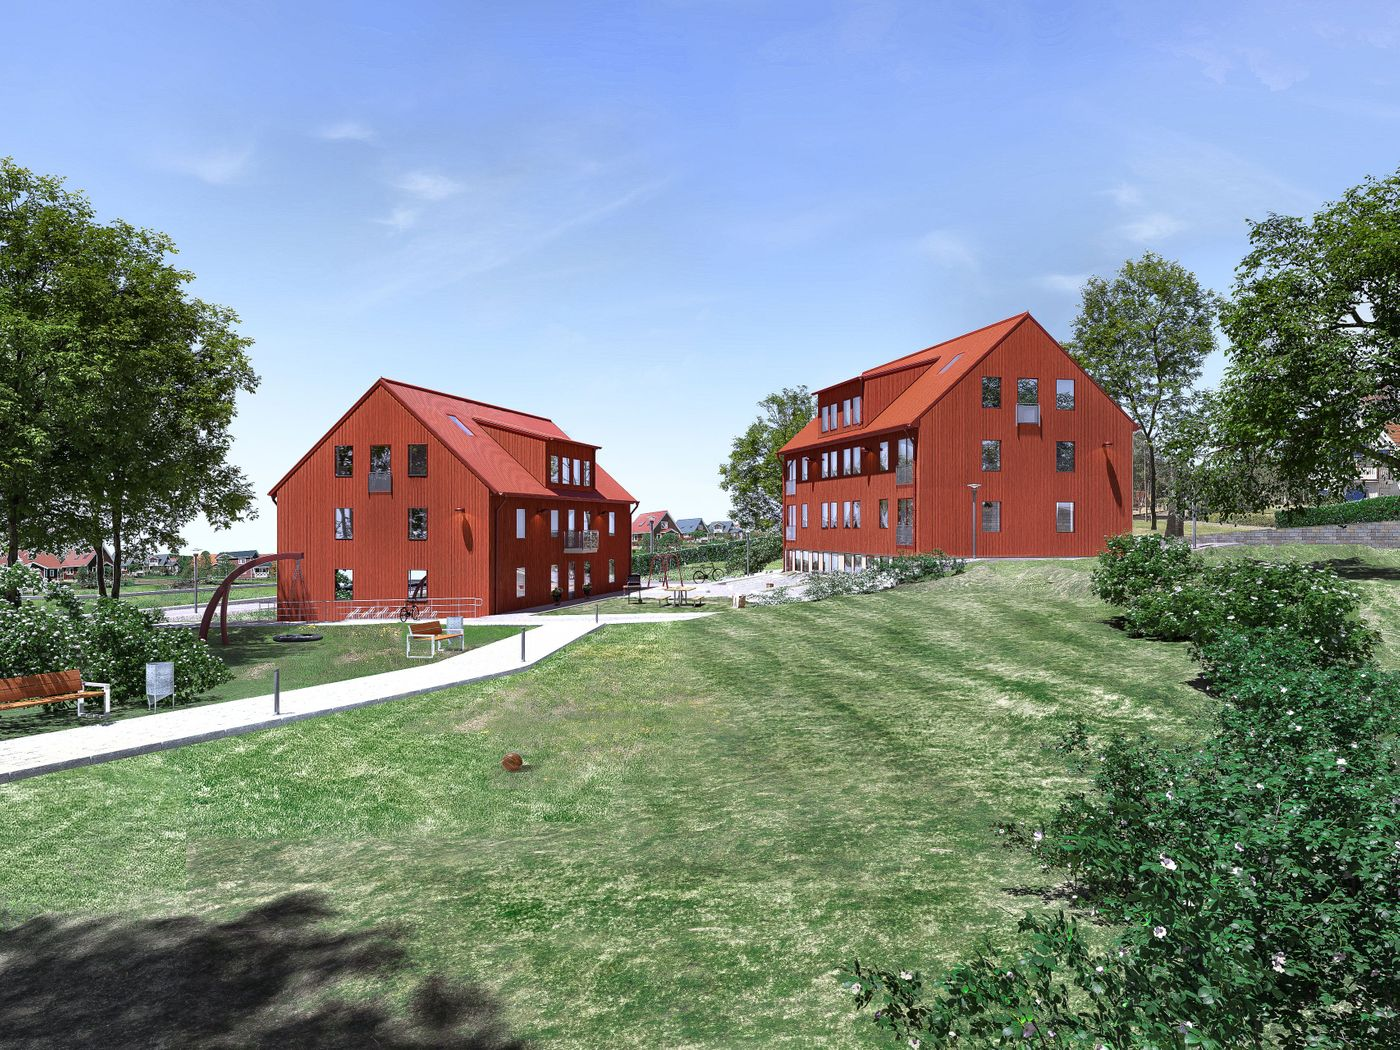 My second year with Architectural Visualisation at YRGO in Gothenburg, this is where my journey as a student of arch-viz ends and the future begins!